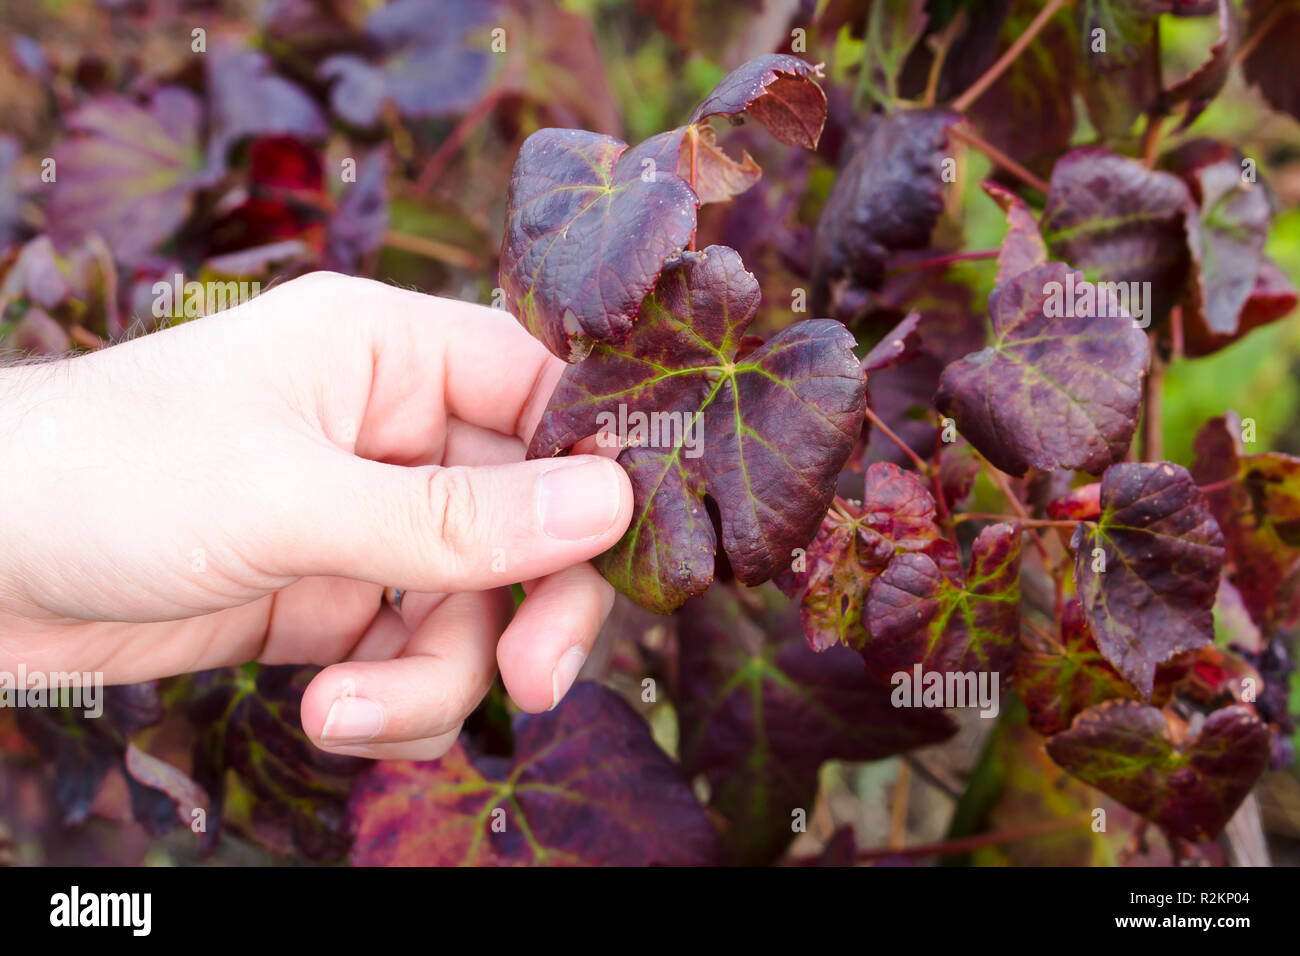 Close up on hand of white man grabbing dried and old leaf of grape-bearing vines, symbolizing fall and end of harvest. Stock Photo